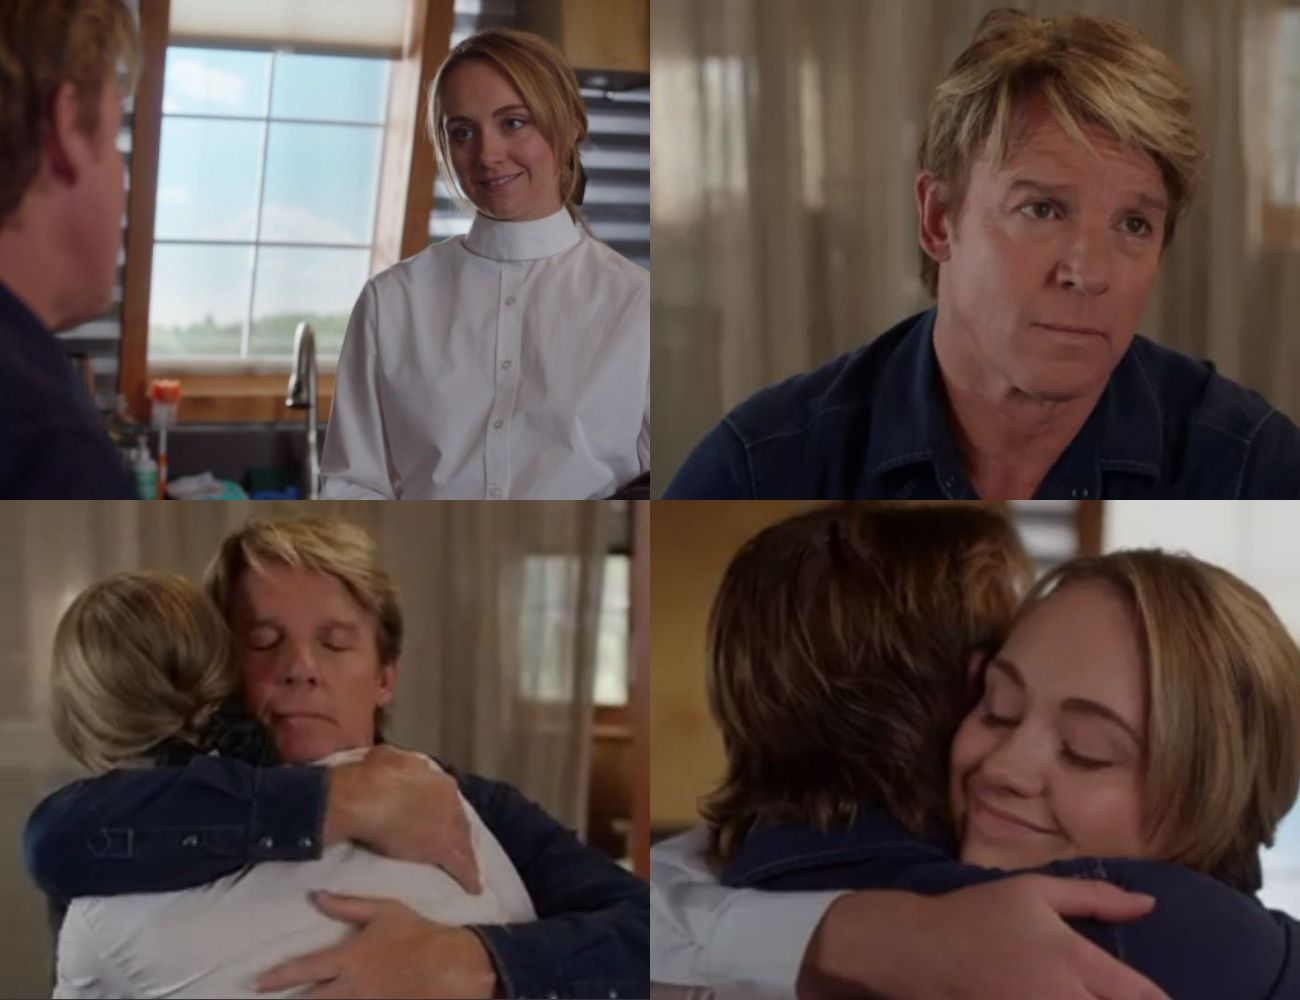 Amy Dad I Wanted To Thank You Tim Oh Honey I Ll Babysit Anytime Amy Not Just For Babysitting Dad Thank Y Heartland Cast Heartland Tv Show Heartland Tv